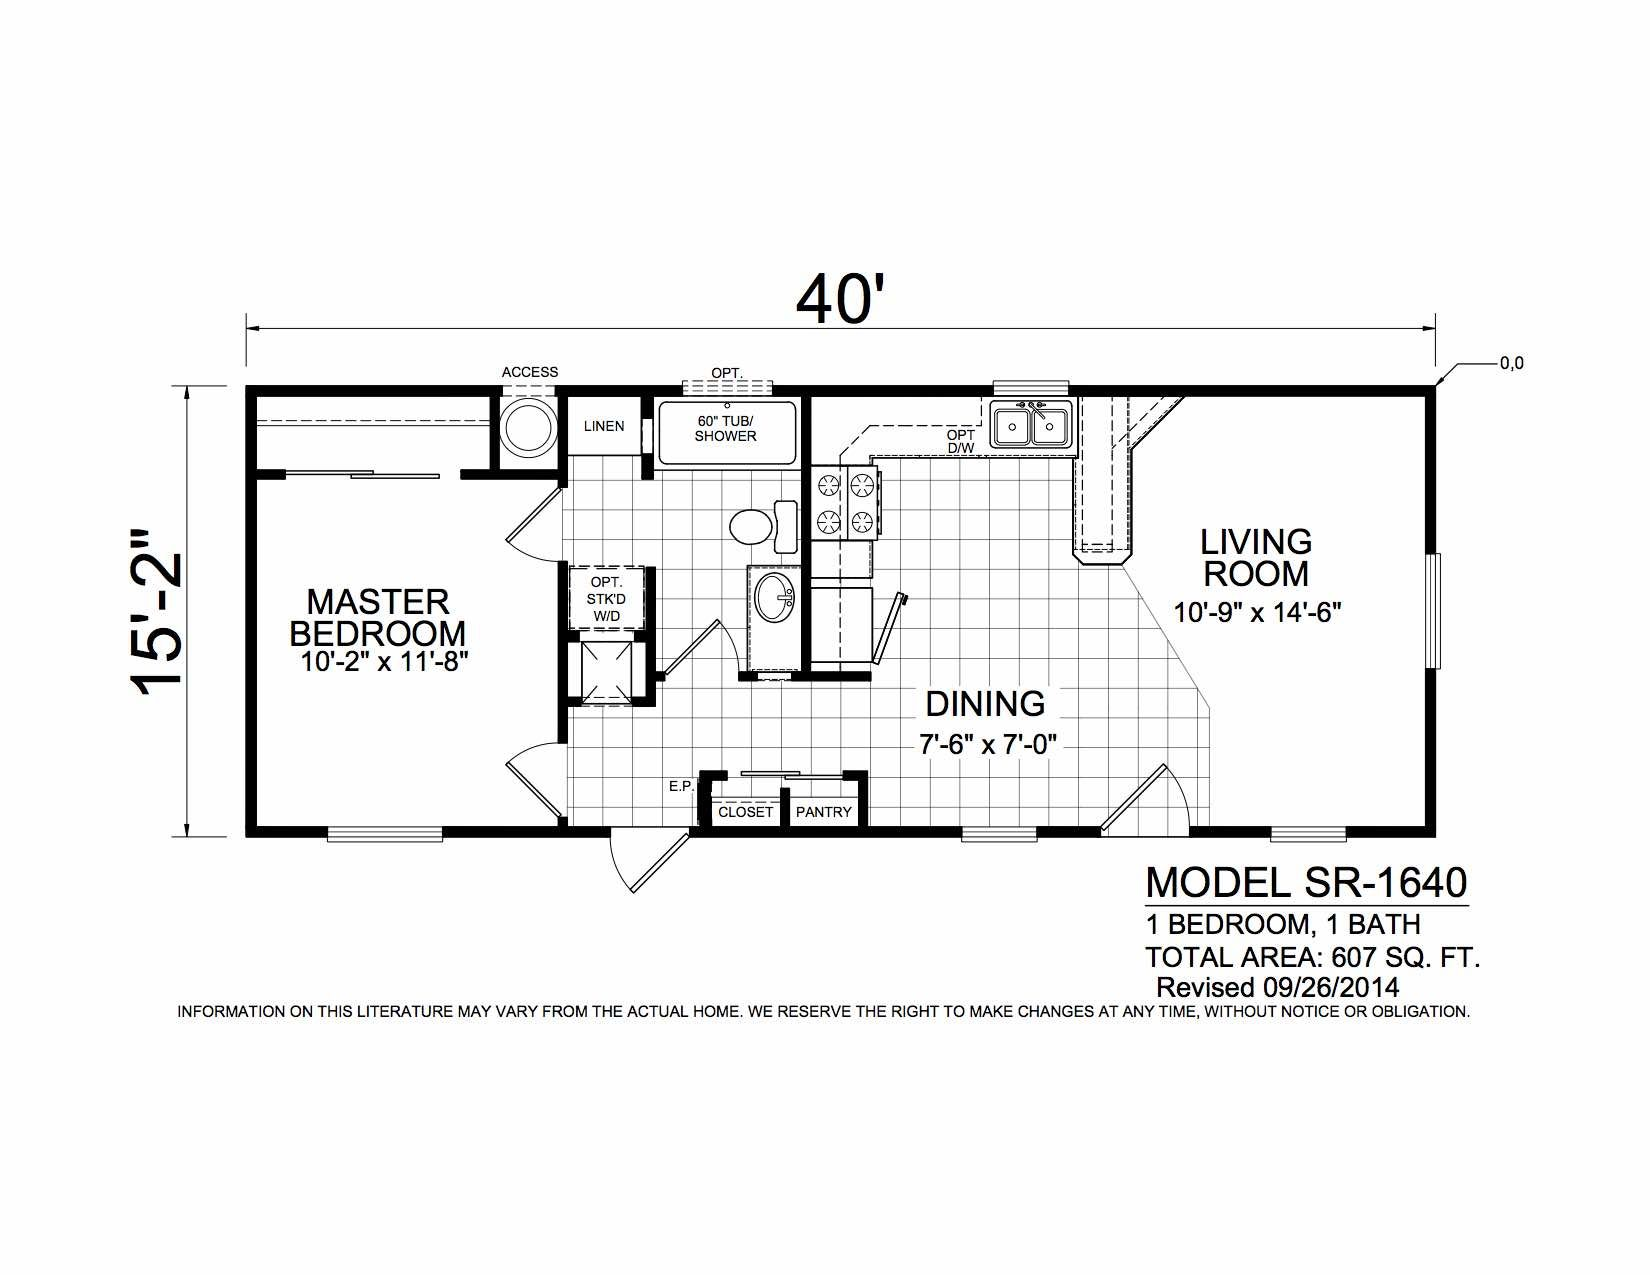 Homes Direct Modular Homes - Model SR1640 - Floorplan